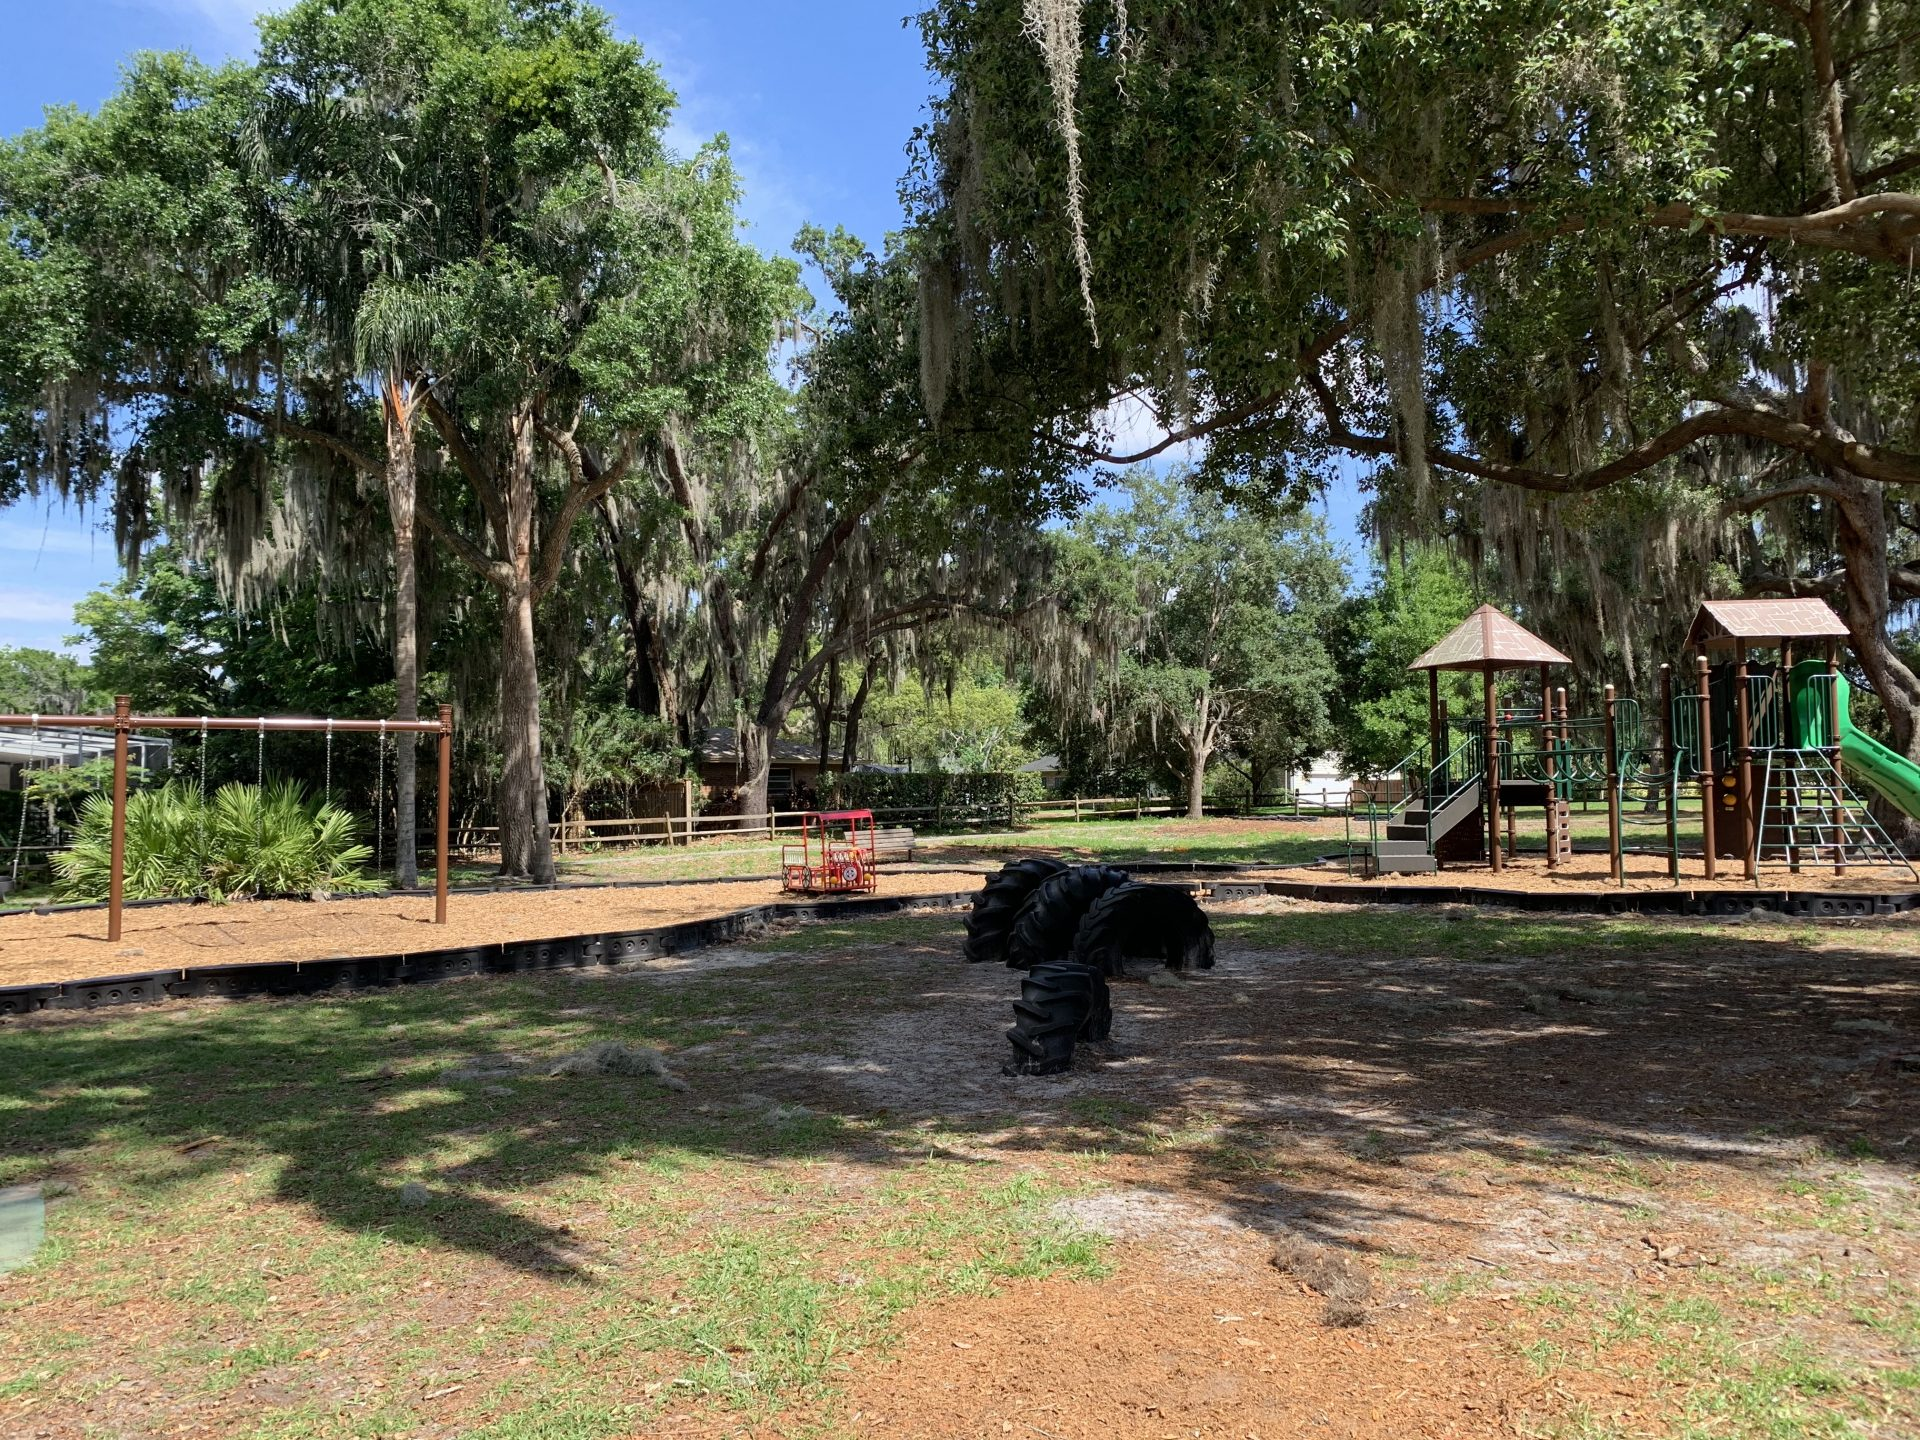 Central Park in Windermere, FL